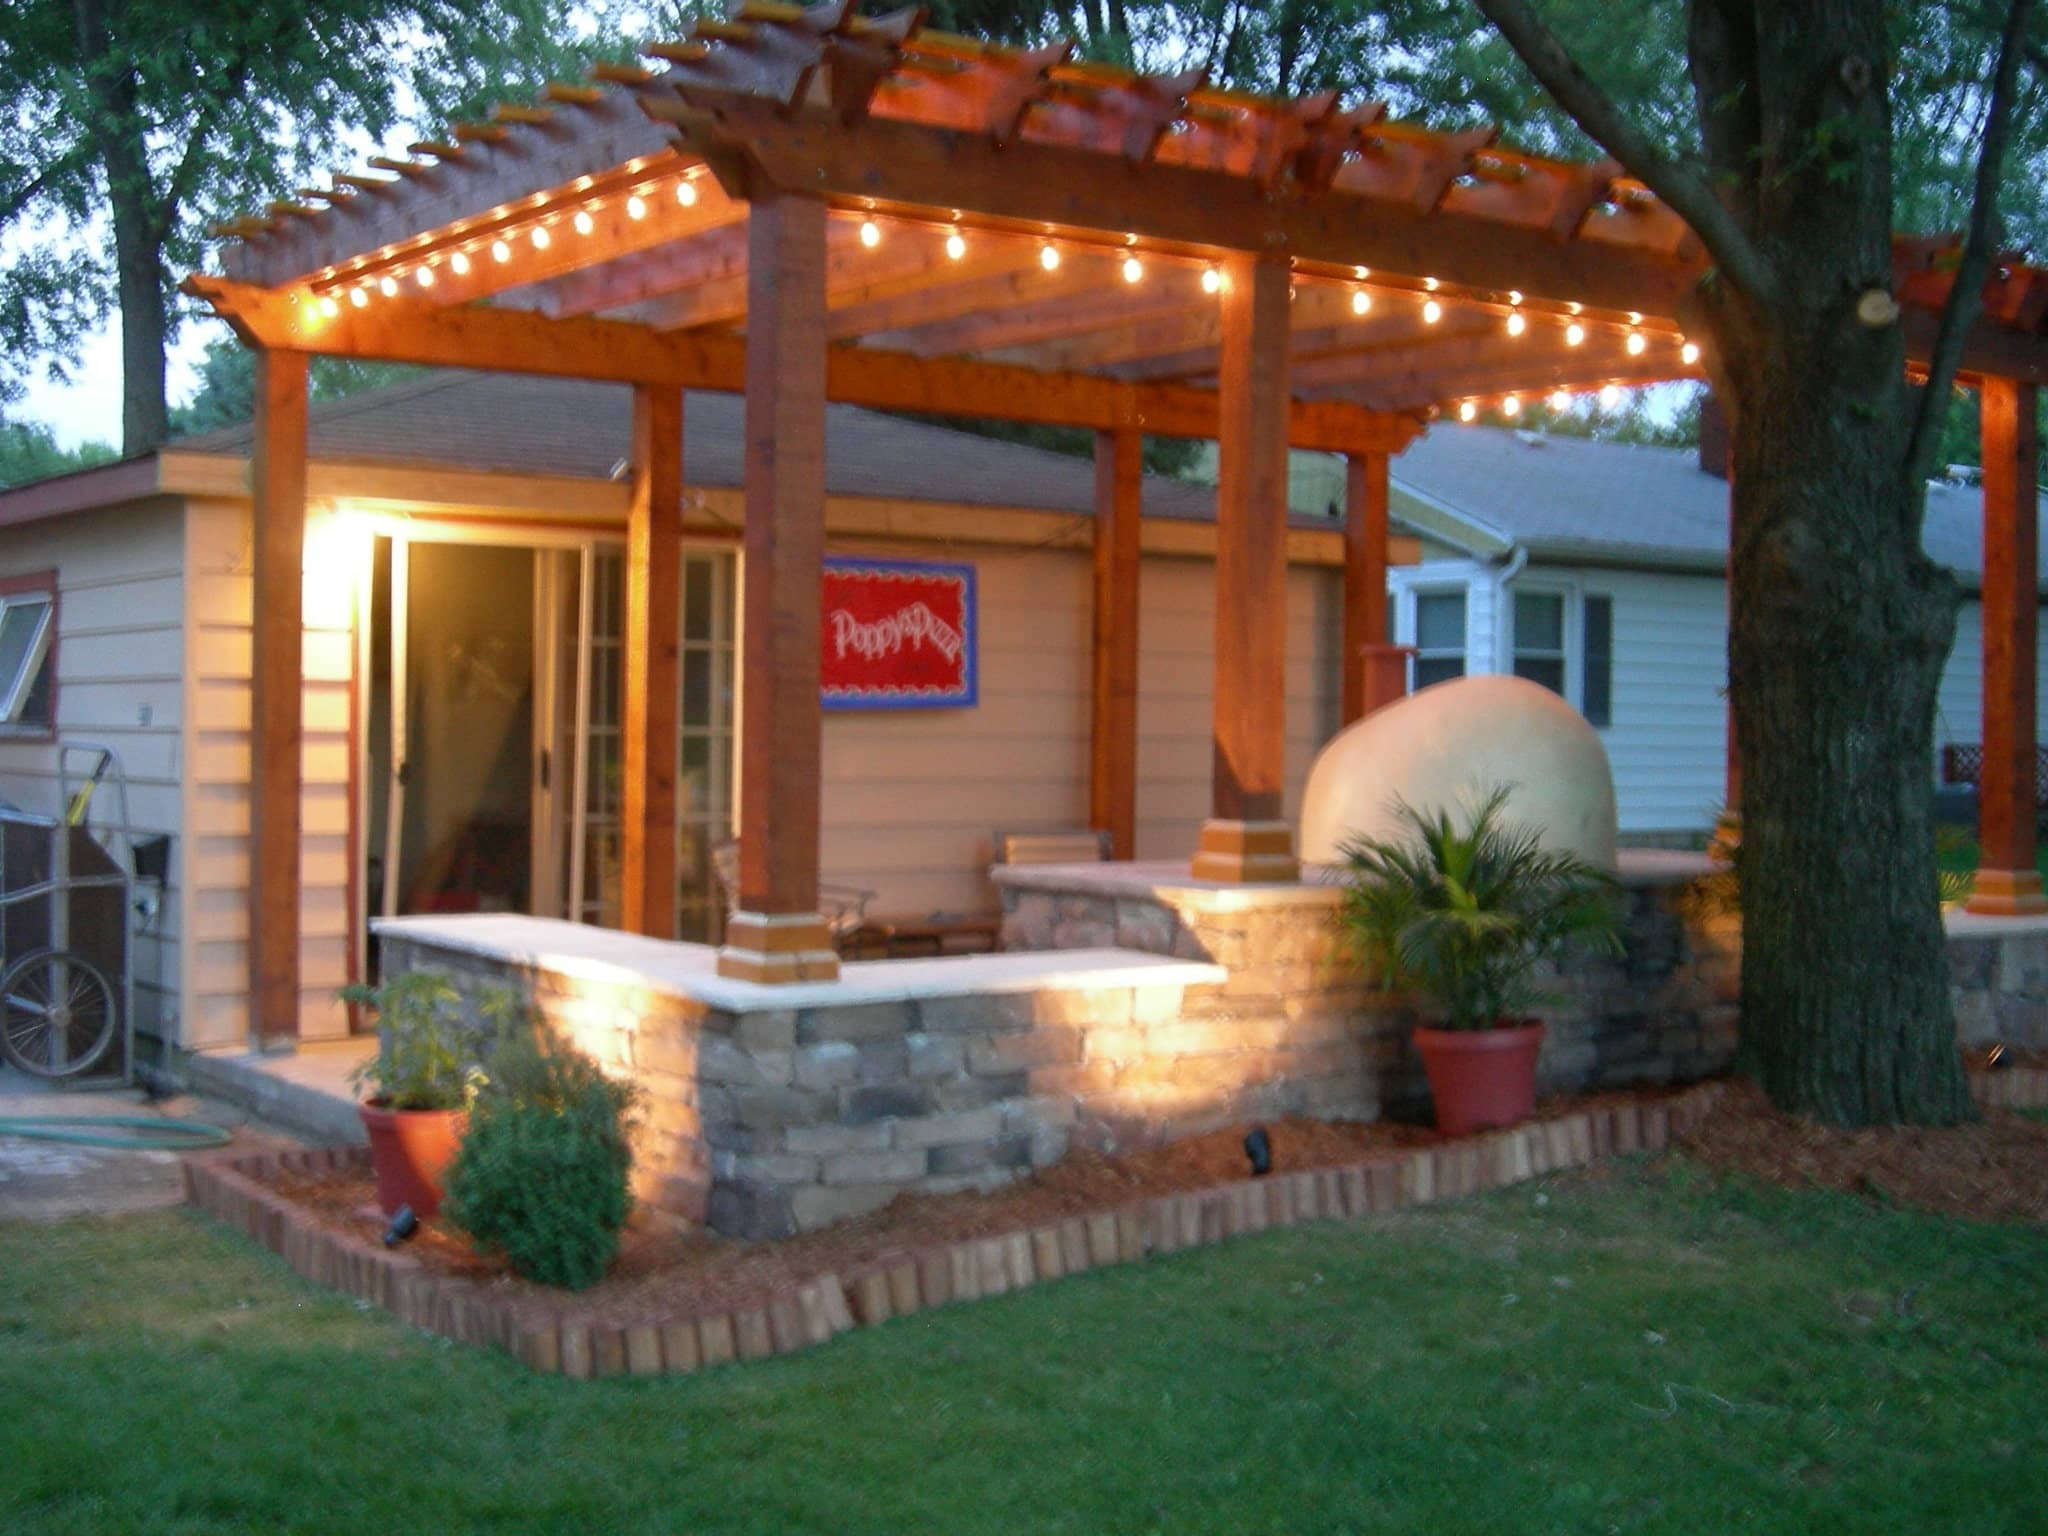 My Great Outdoors: Paula's Pizza Patio Makeover: gallery image 1